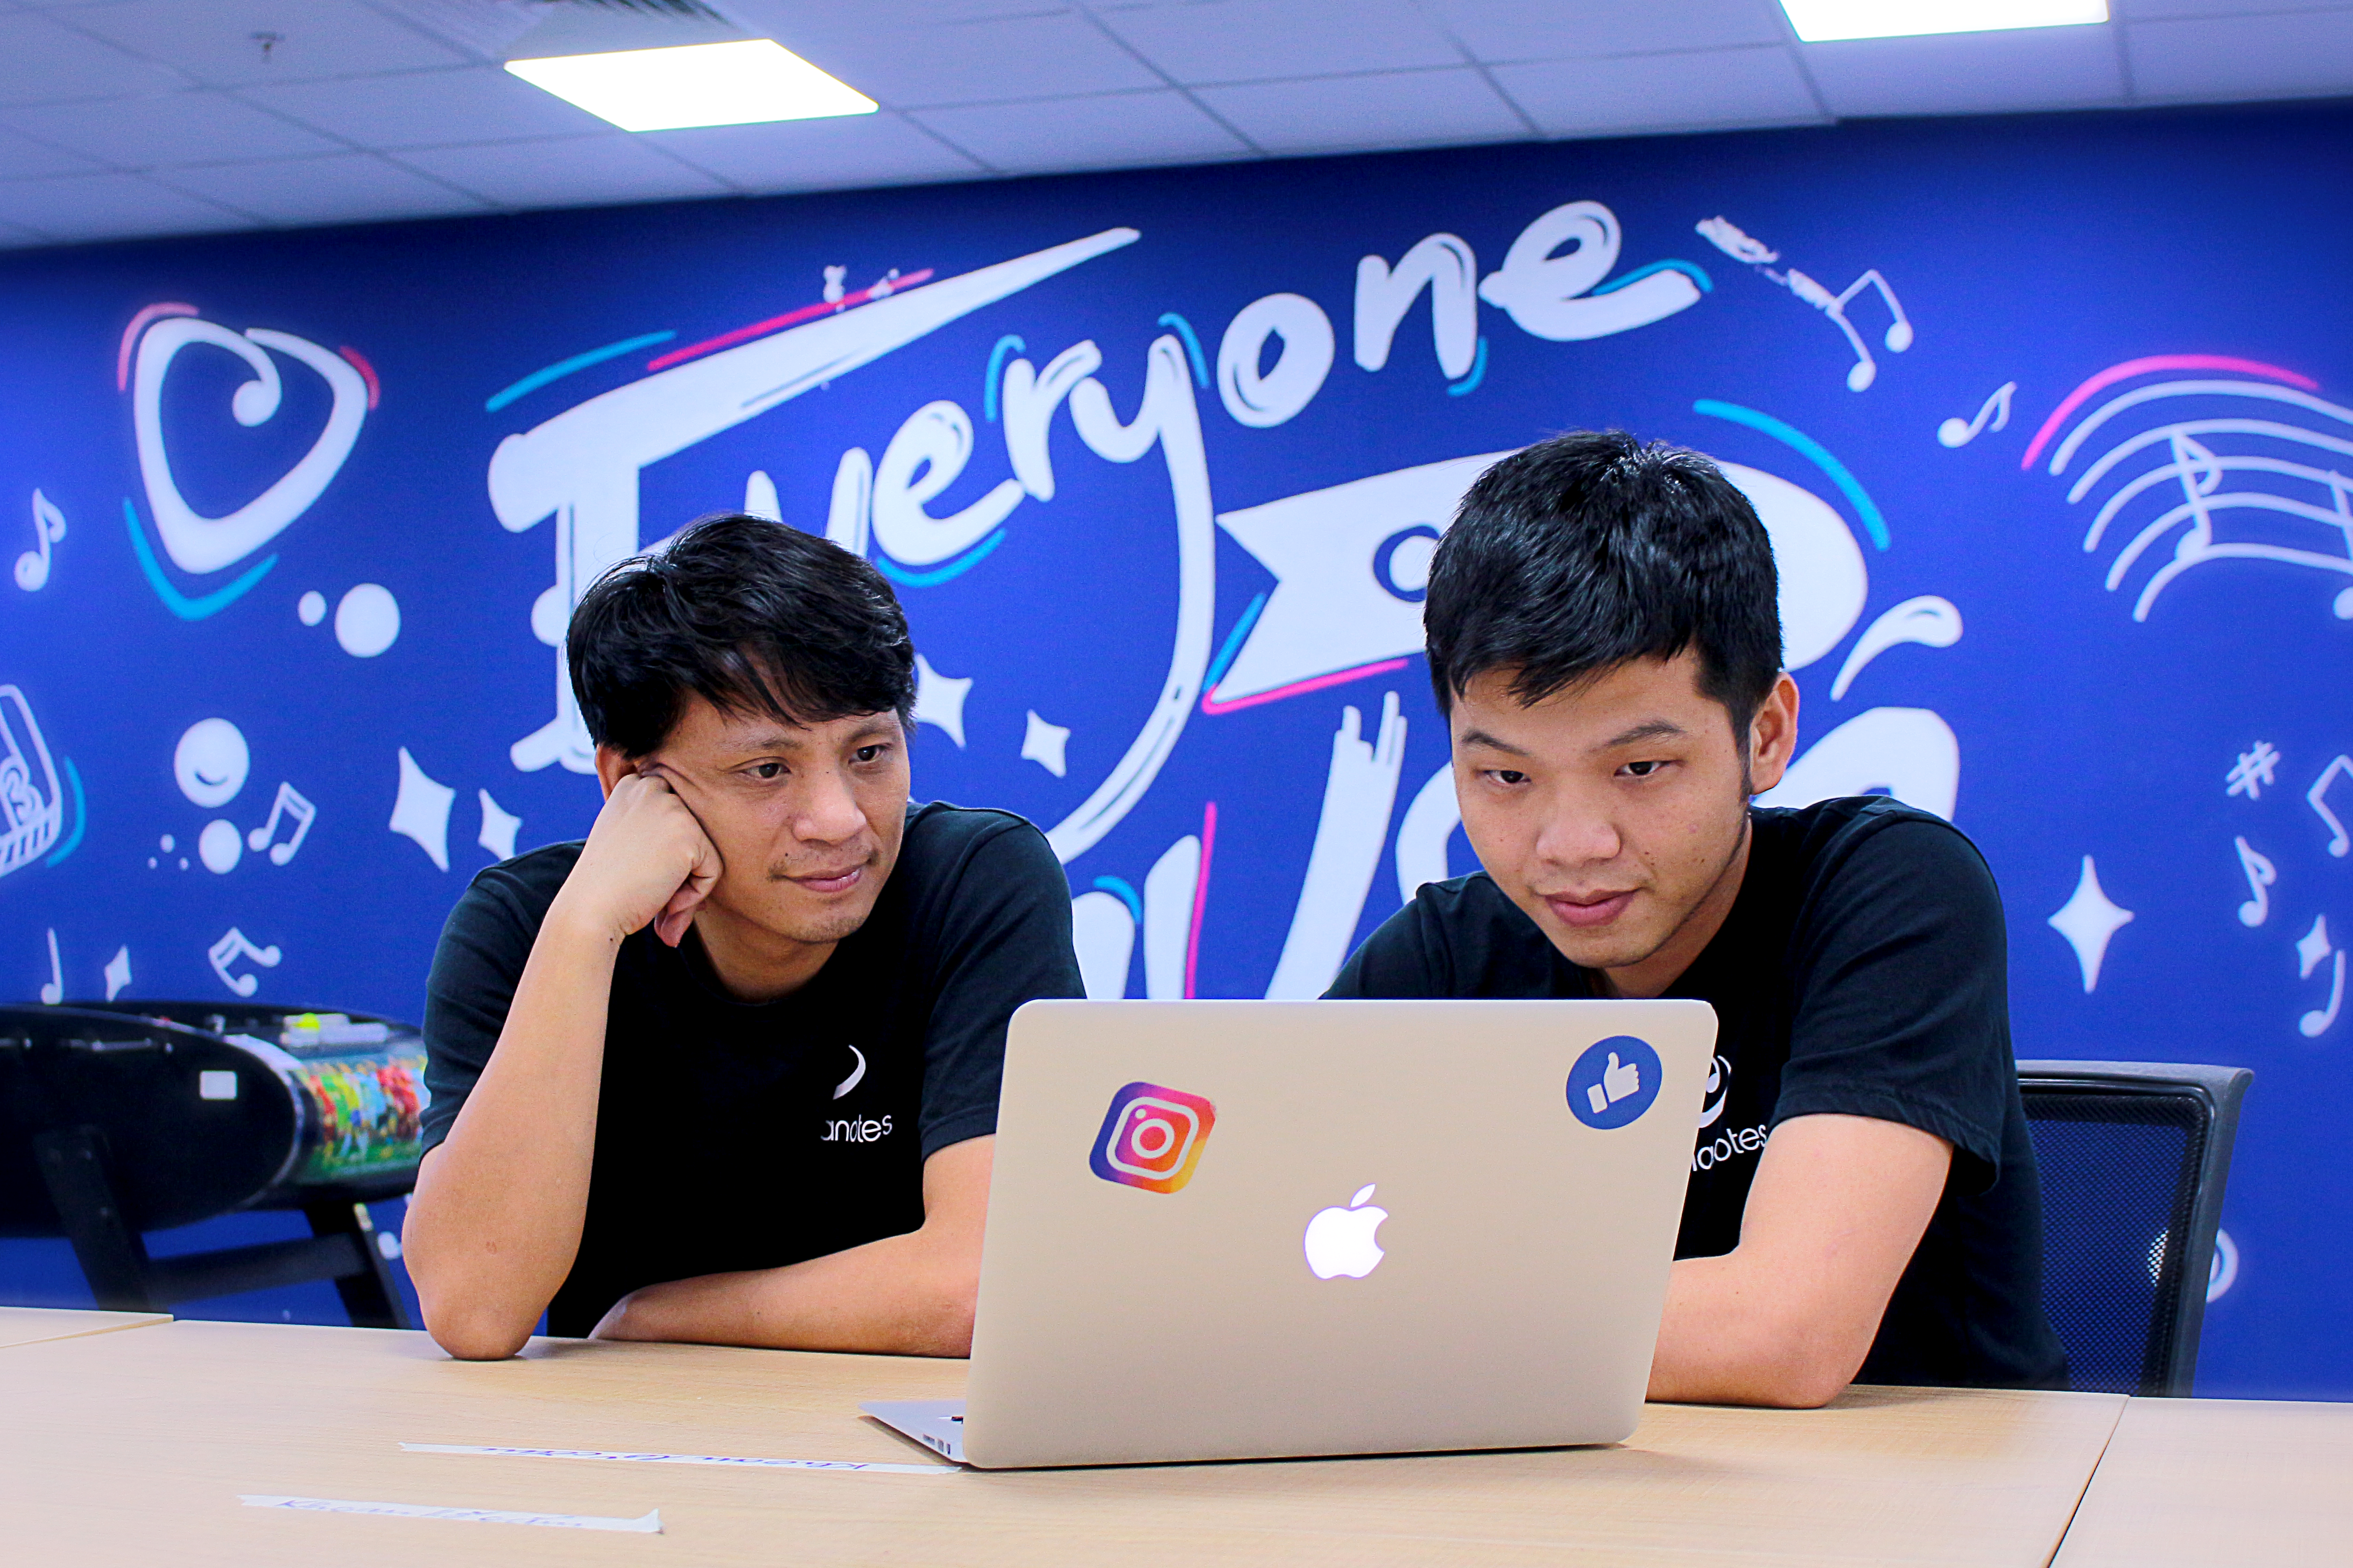 Anh Nguyễn Tuấn Cường - Co-founder, Chief Product Officer của Amanotes và cộng sự.